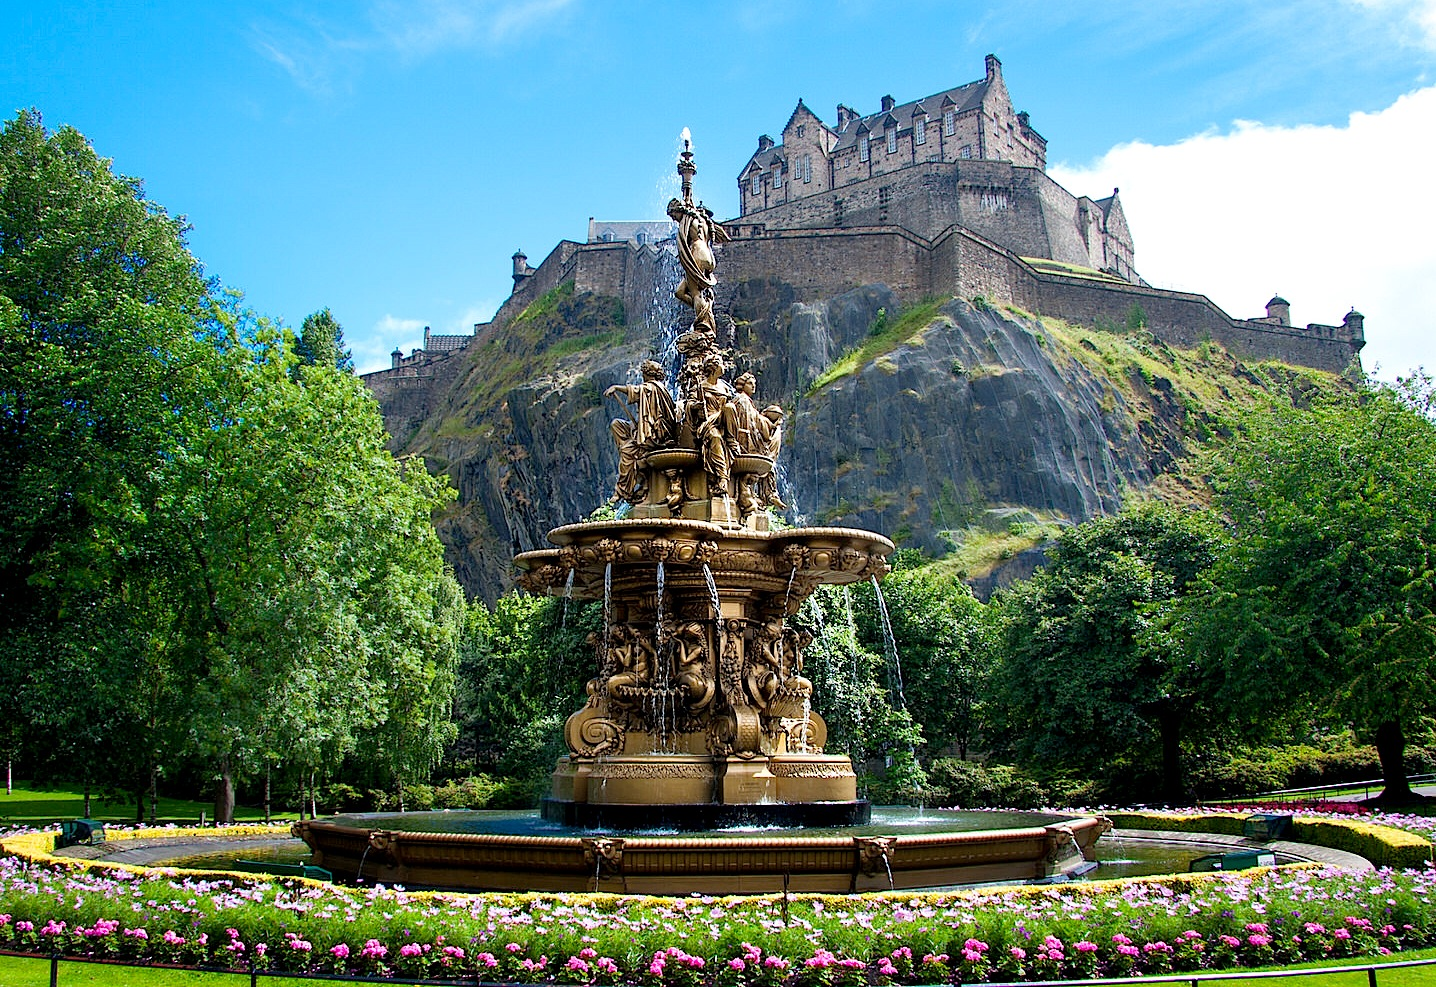 Ross fountain, Edinburgh